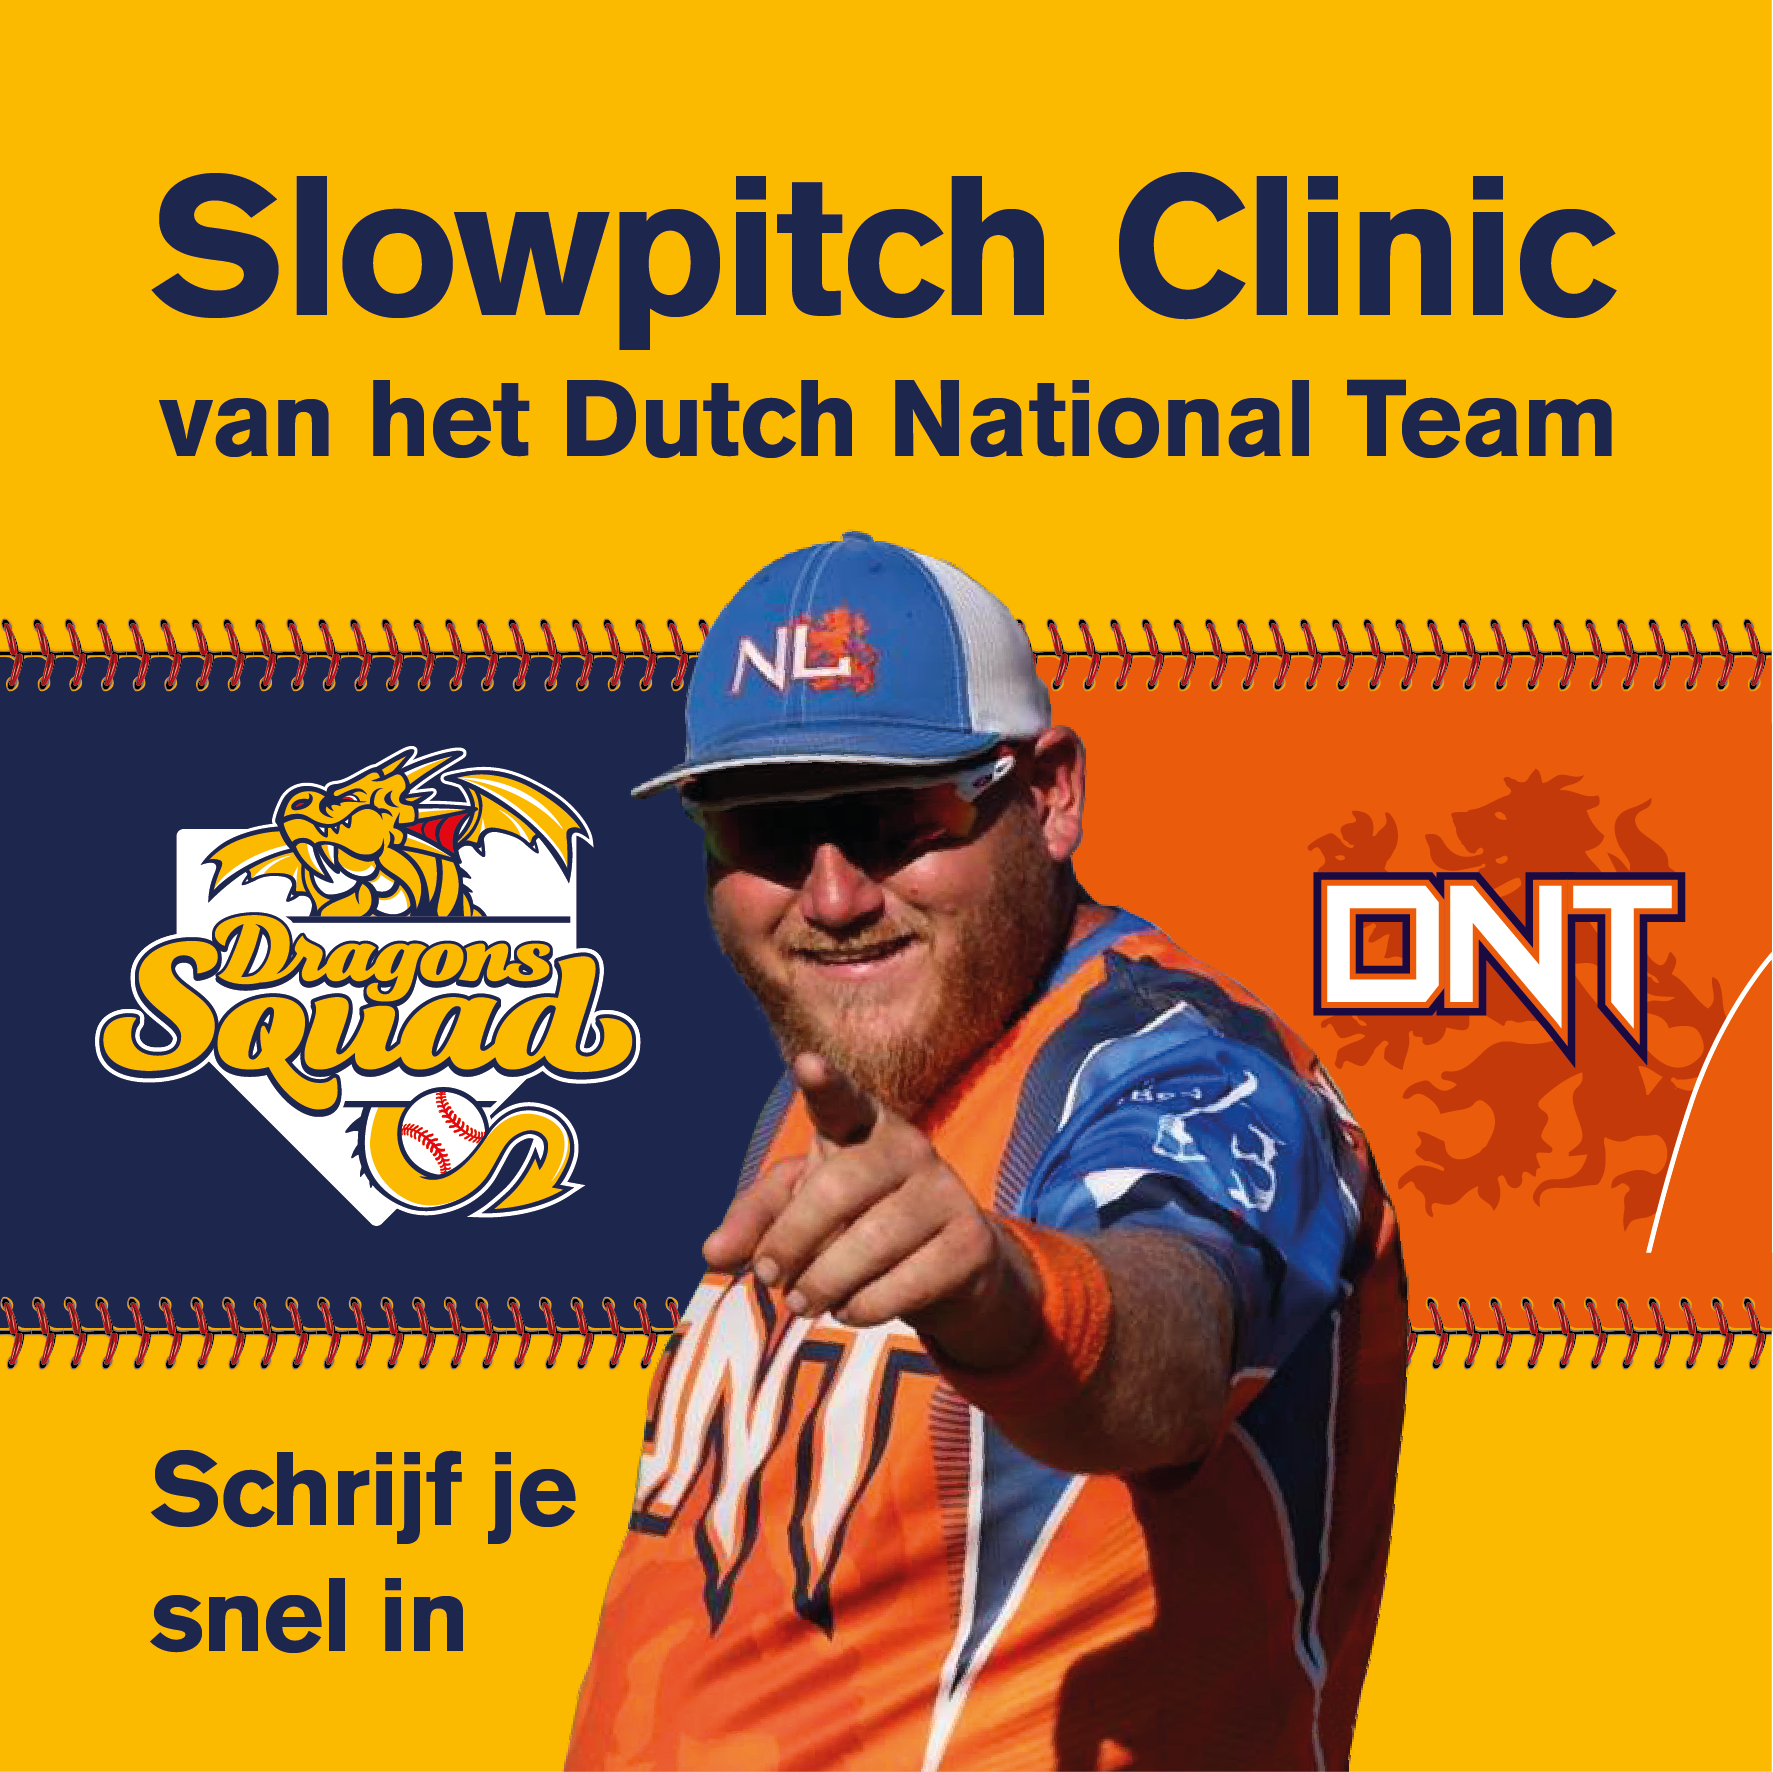 Slowpitch Clinic DNT